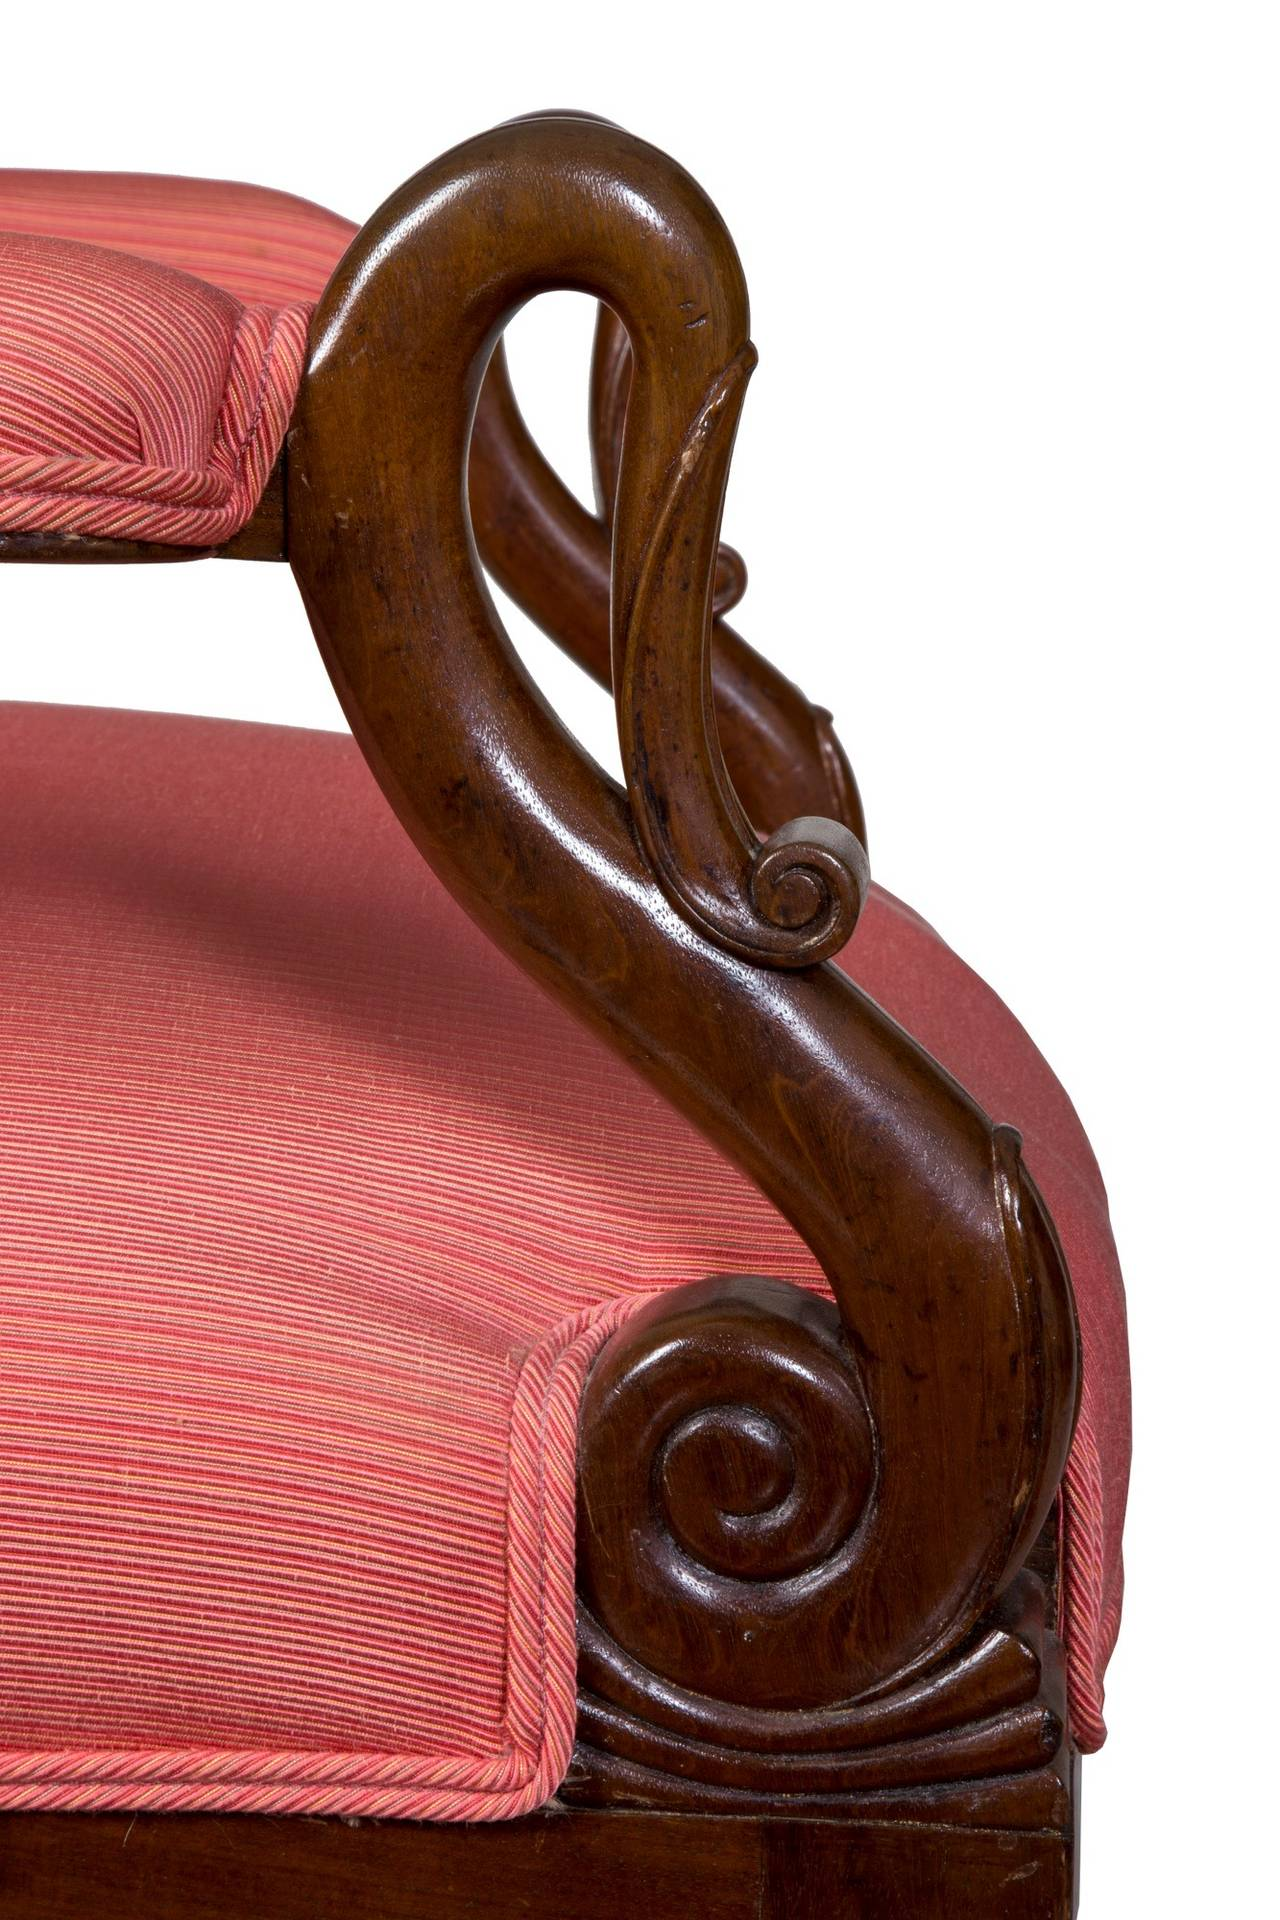 Mahogany Neoclassical Armchair or Lolling Chair Attributed to Duncan Phyfe For Sale 1